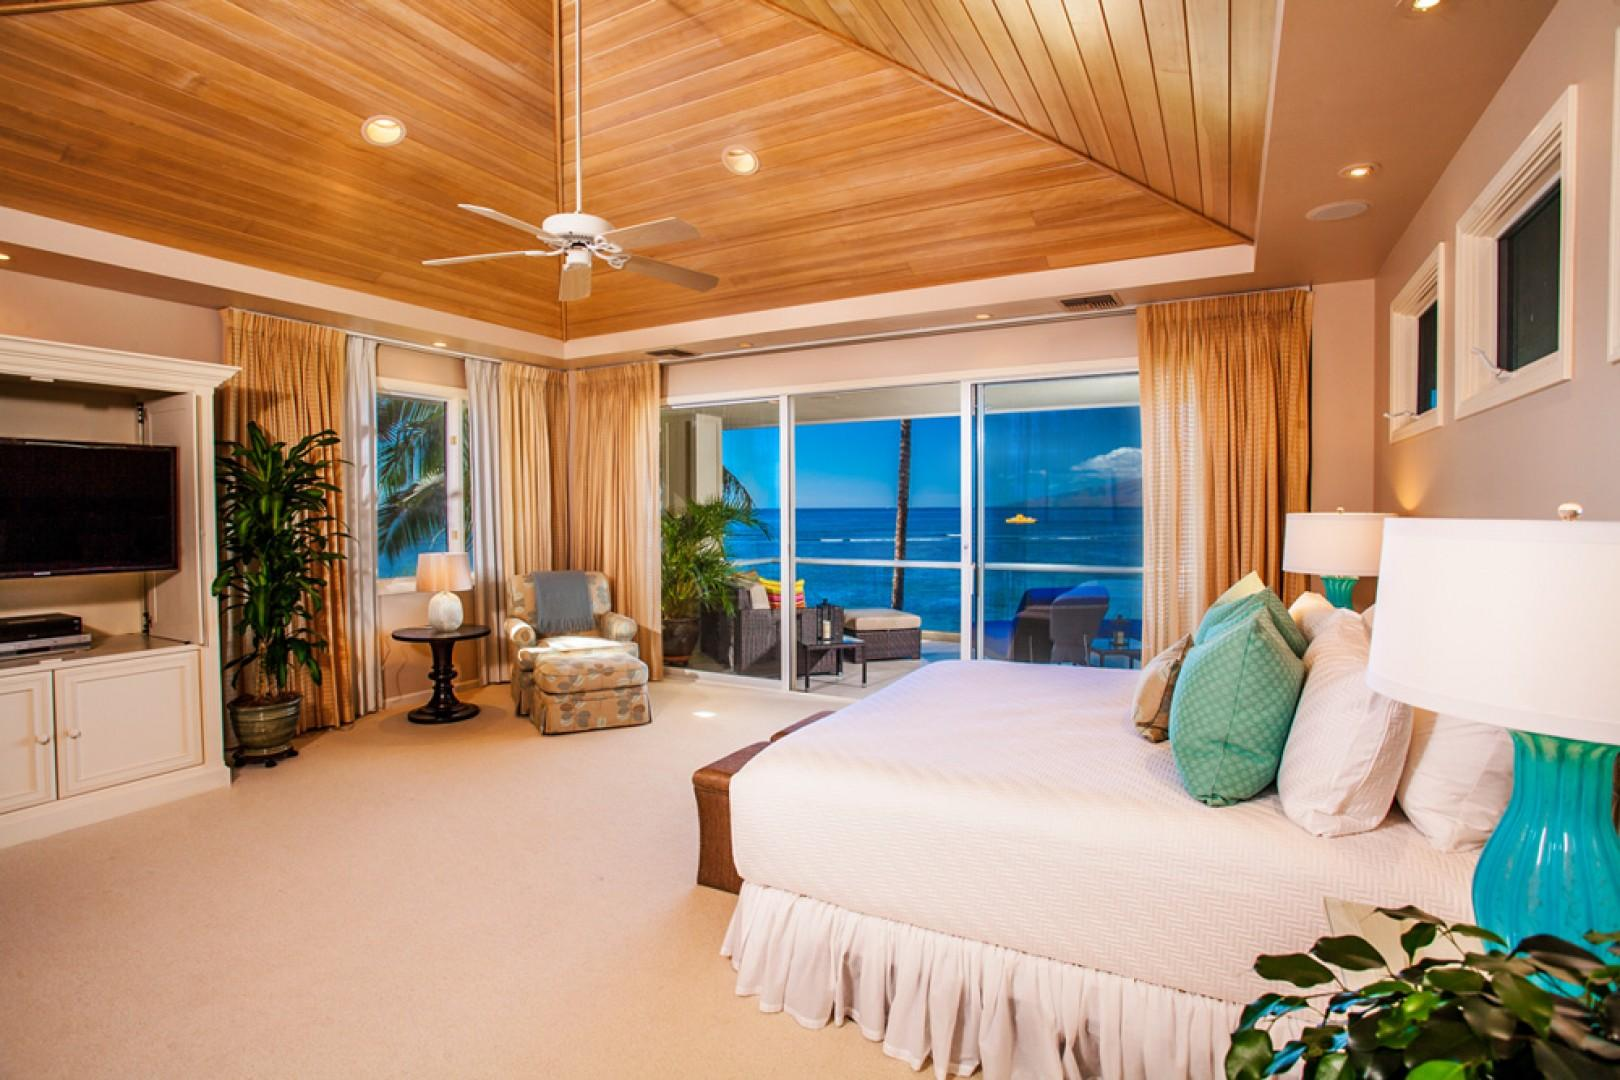 Opal Seas At Baby Beach - Second Floor Sunset, Ocean and Beach View Master Bedroom with New King Mattress, Expansive Veranda, Chaise Lounge Chairs, Chat Area, Dining Table, Super-Sized Hammock